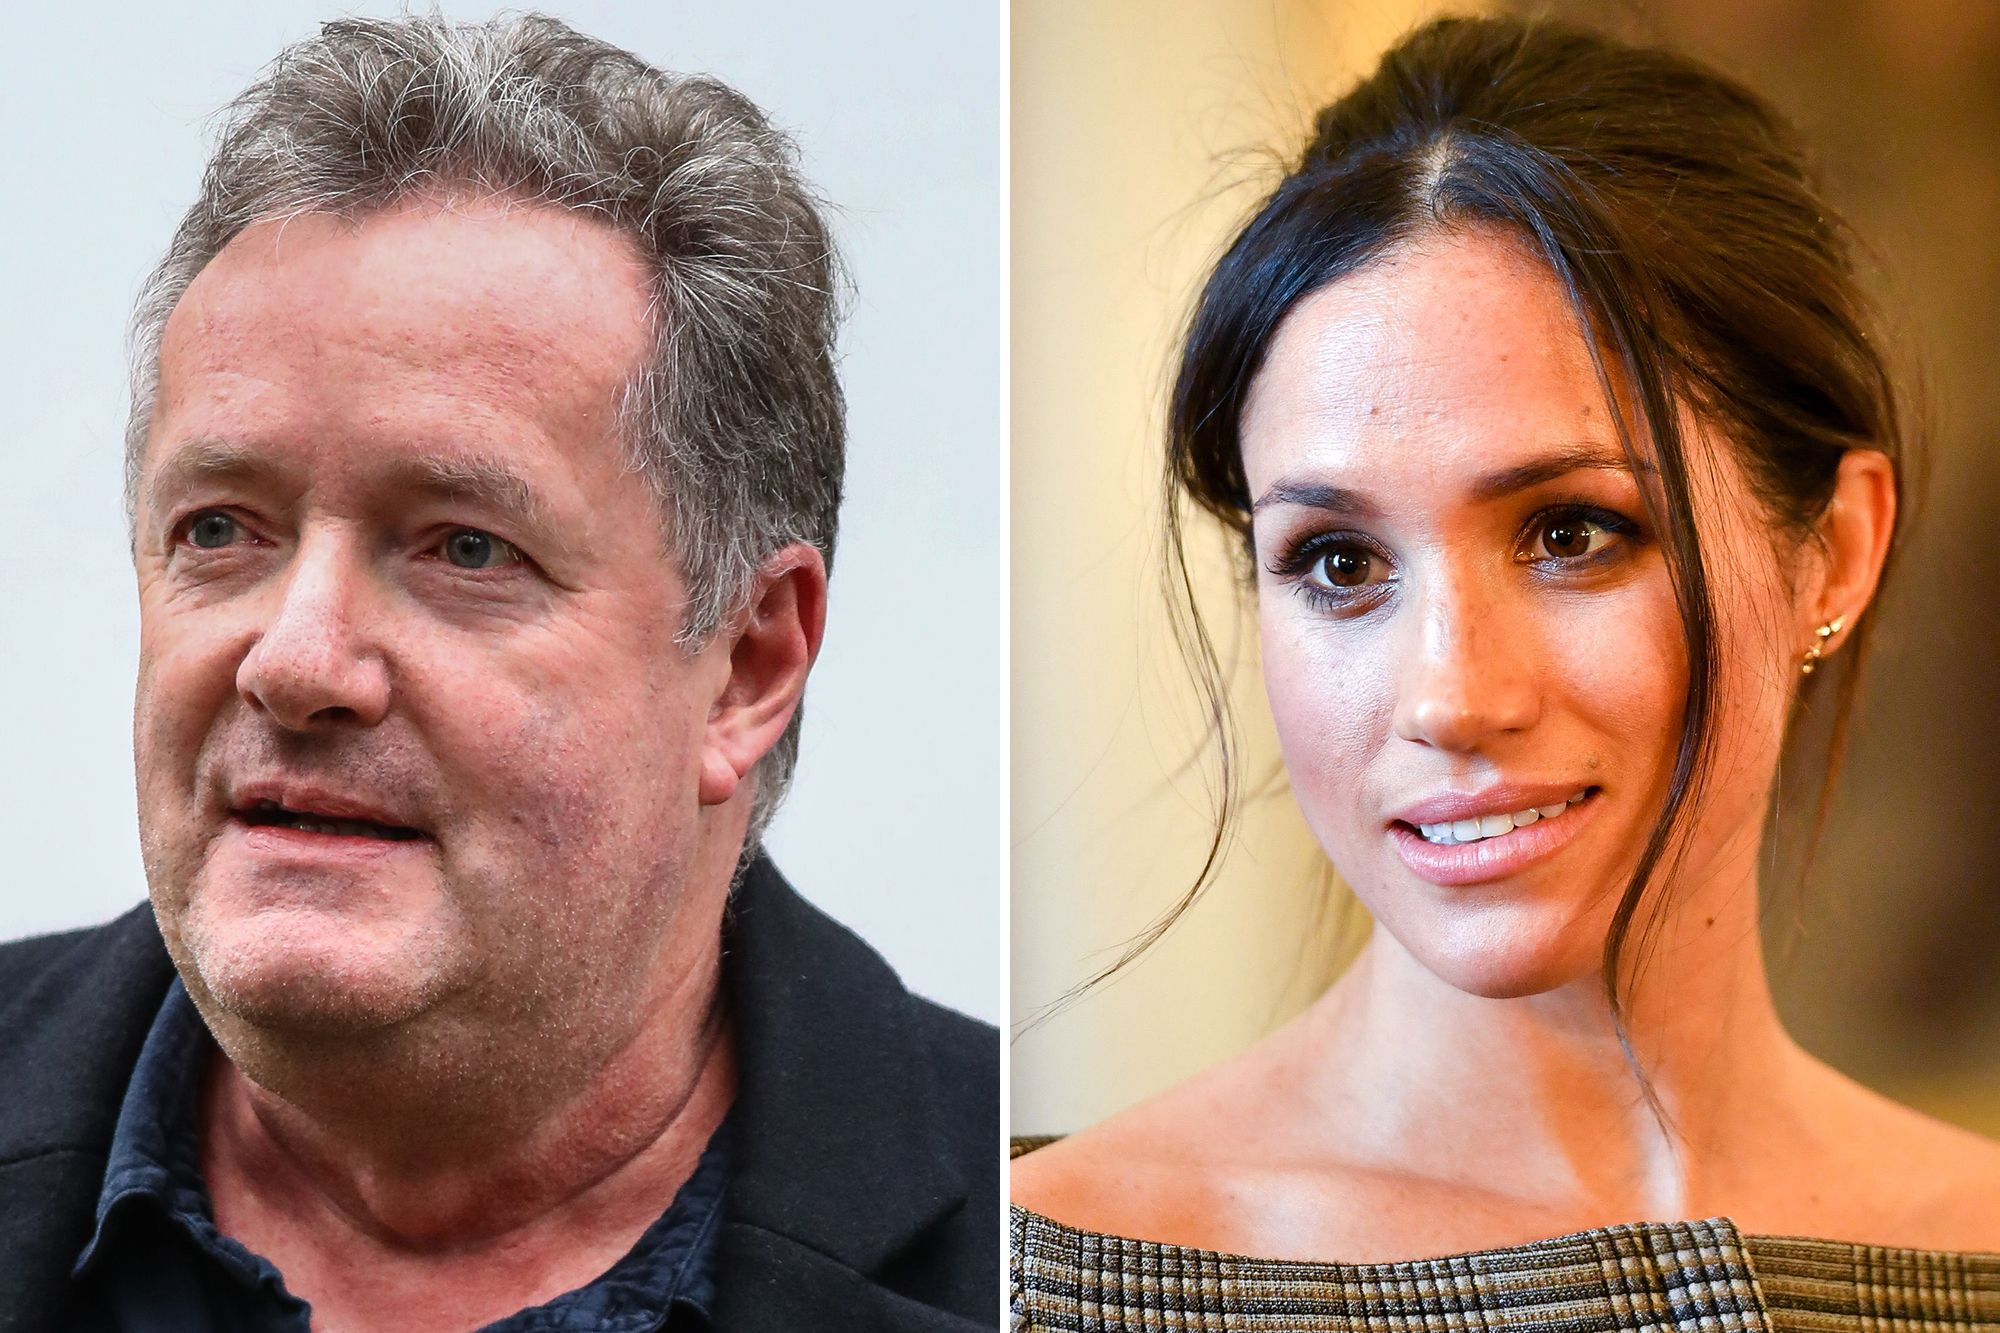 piers-morgan-vs-meghan-markle-he-claims-victory-after-being-cleared-by-british-media-regulator-ofcom